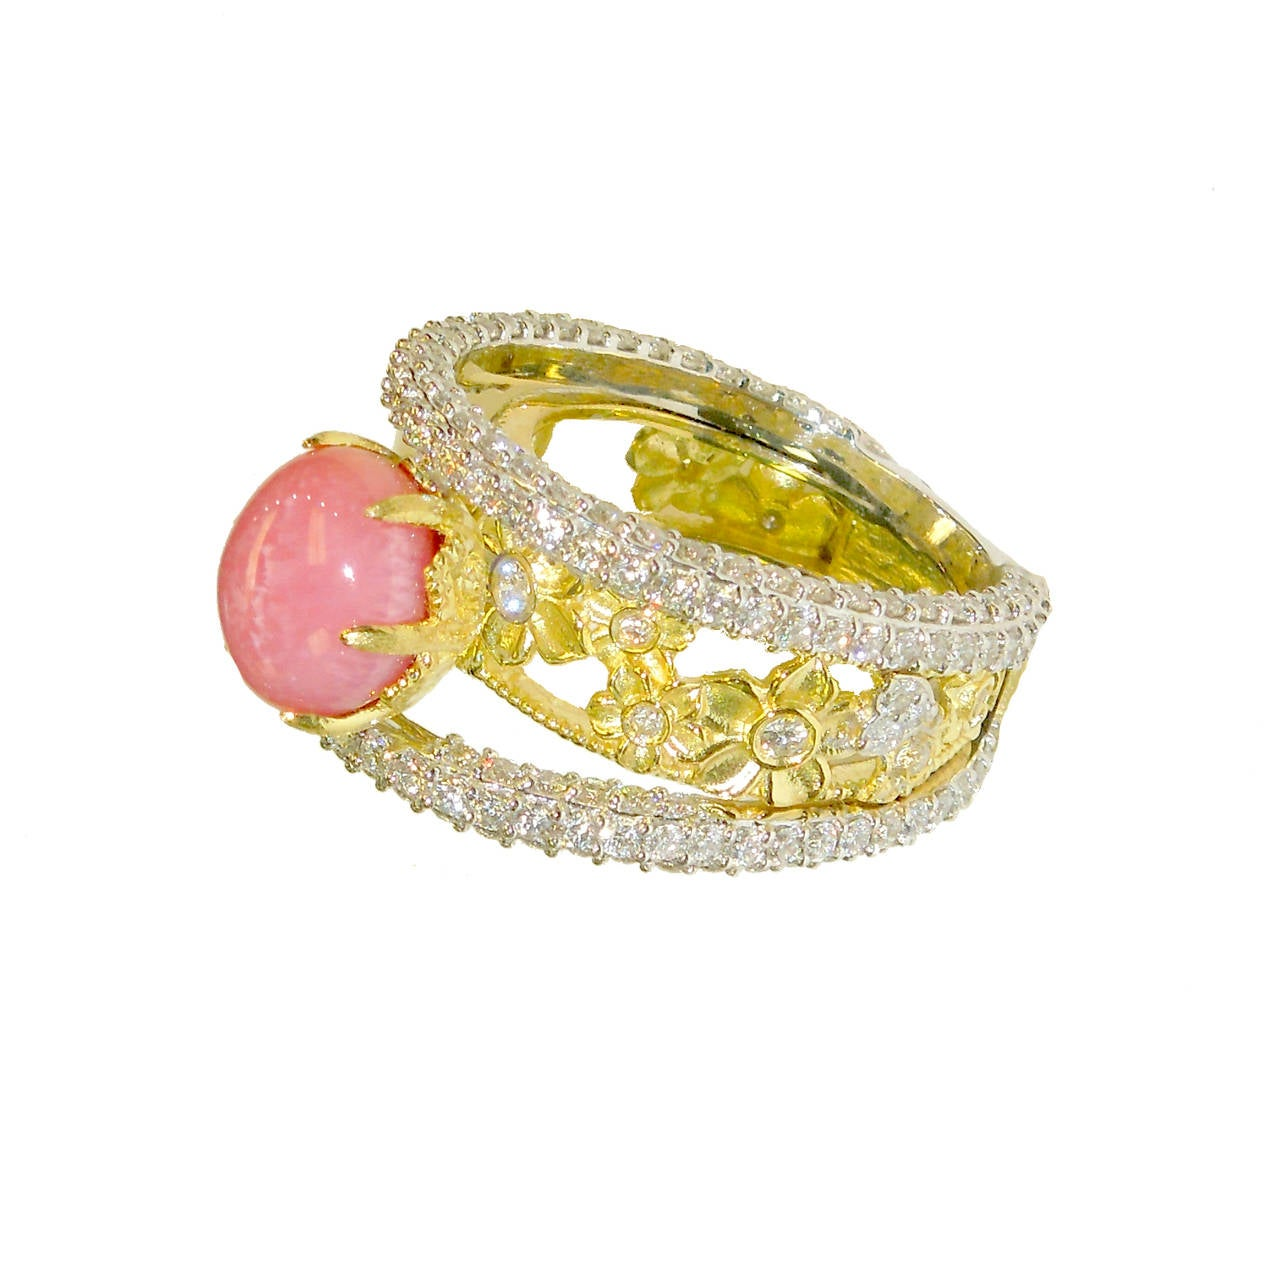 Conch Pearl Ring With Diamonds And Gold 2